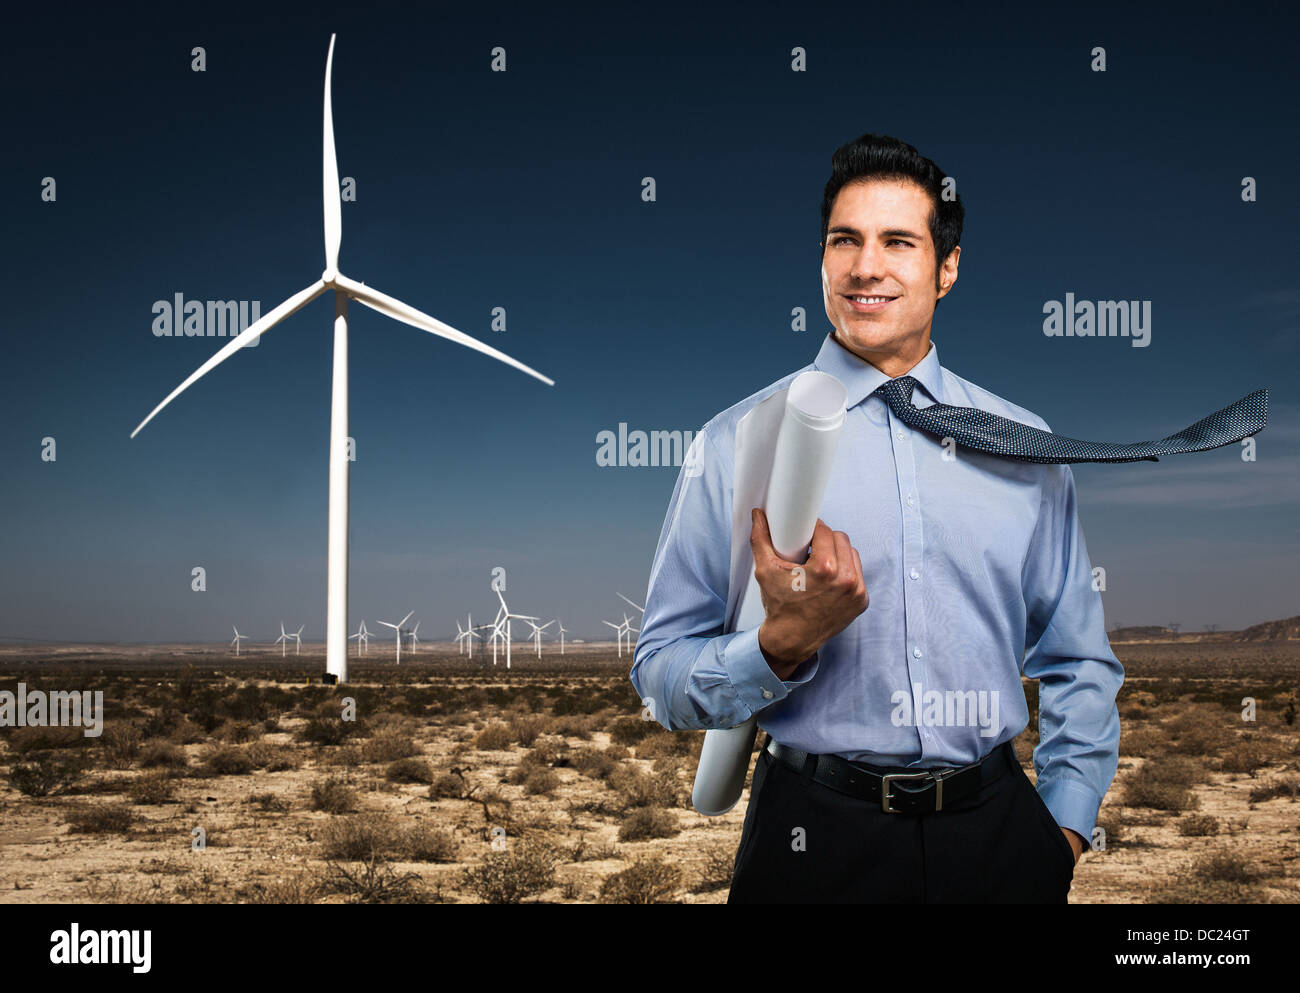 Man standing in front of wind farm - Stock Image